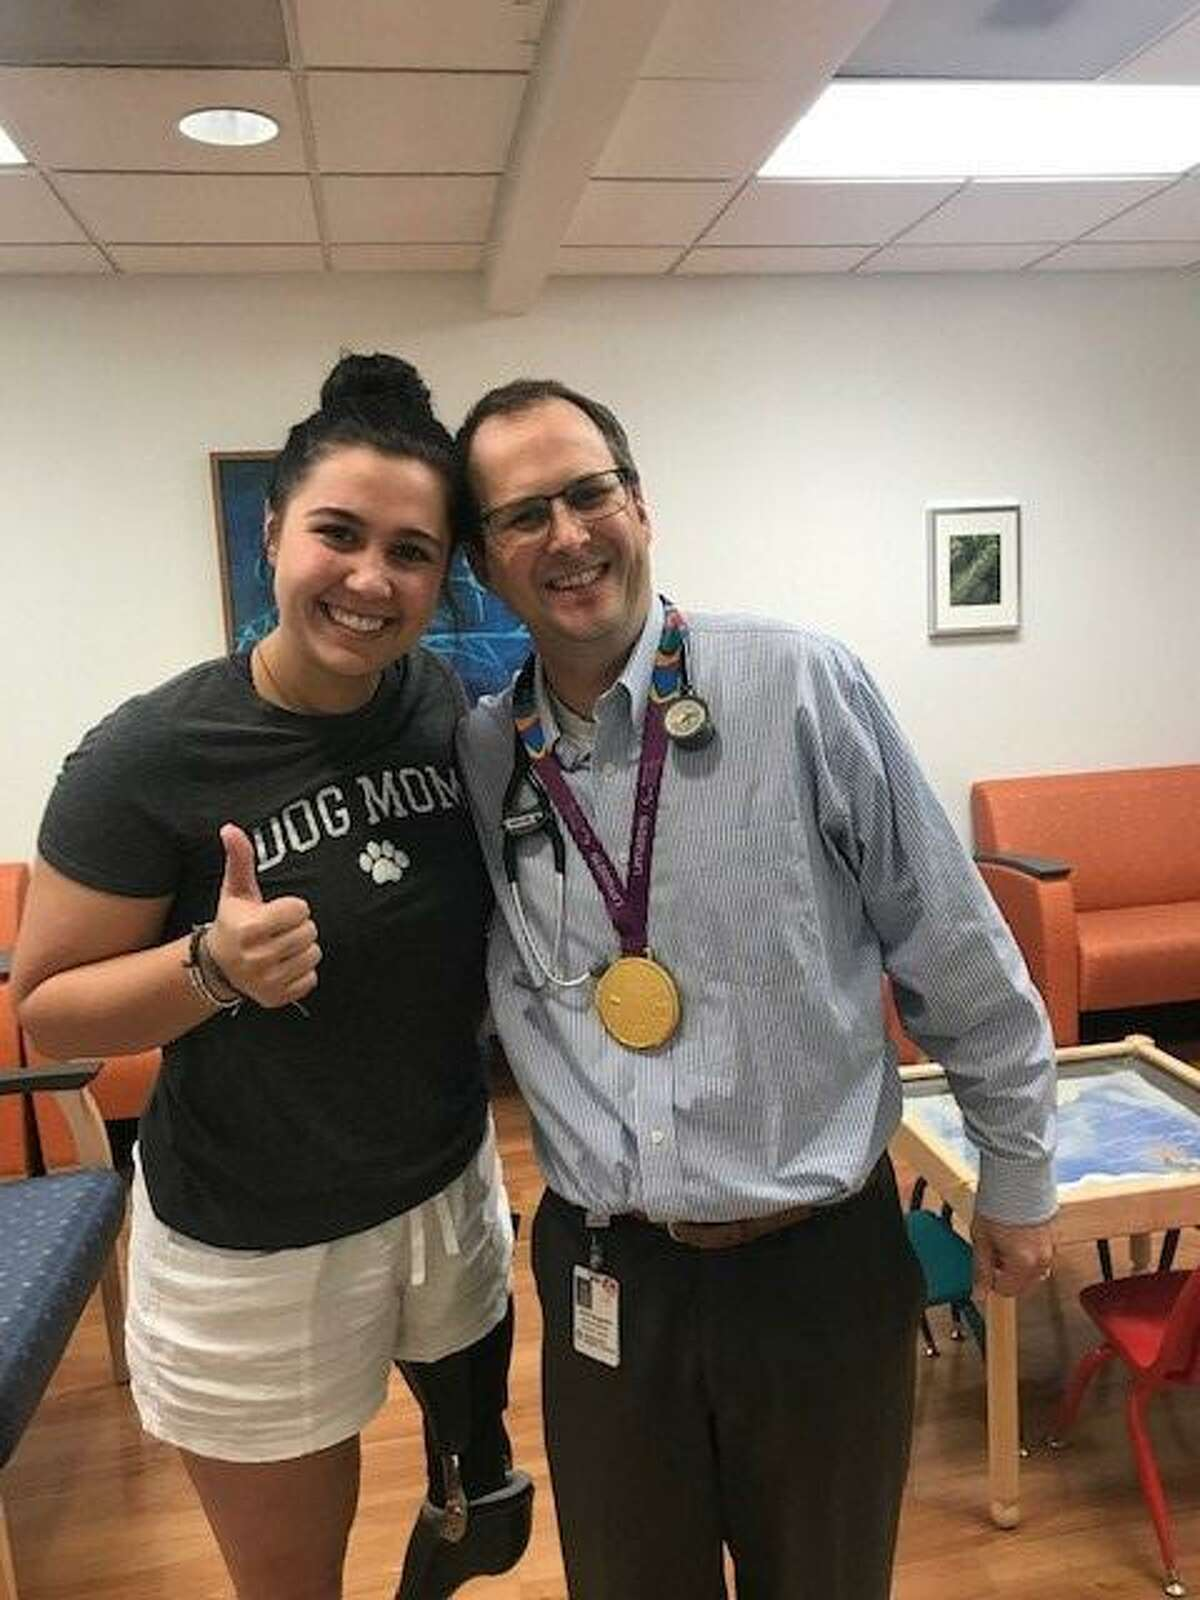 Jillian Williams with Dr. Aaron Sugalski, a pediatric oncologist with the Mays Cancer Center, home to the UT Health San Antonio MD Anderson. Sugalski sees patients at University Hospital, which is a facility of University Health, where Williams received many rounds of chemotherapy.